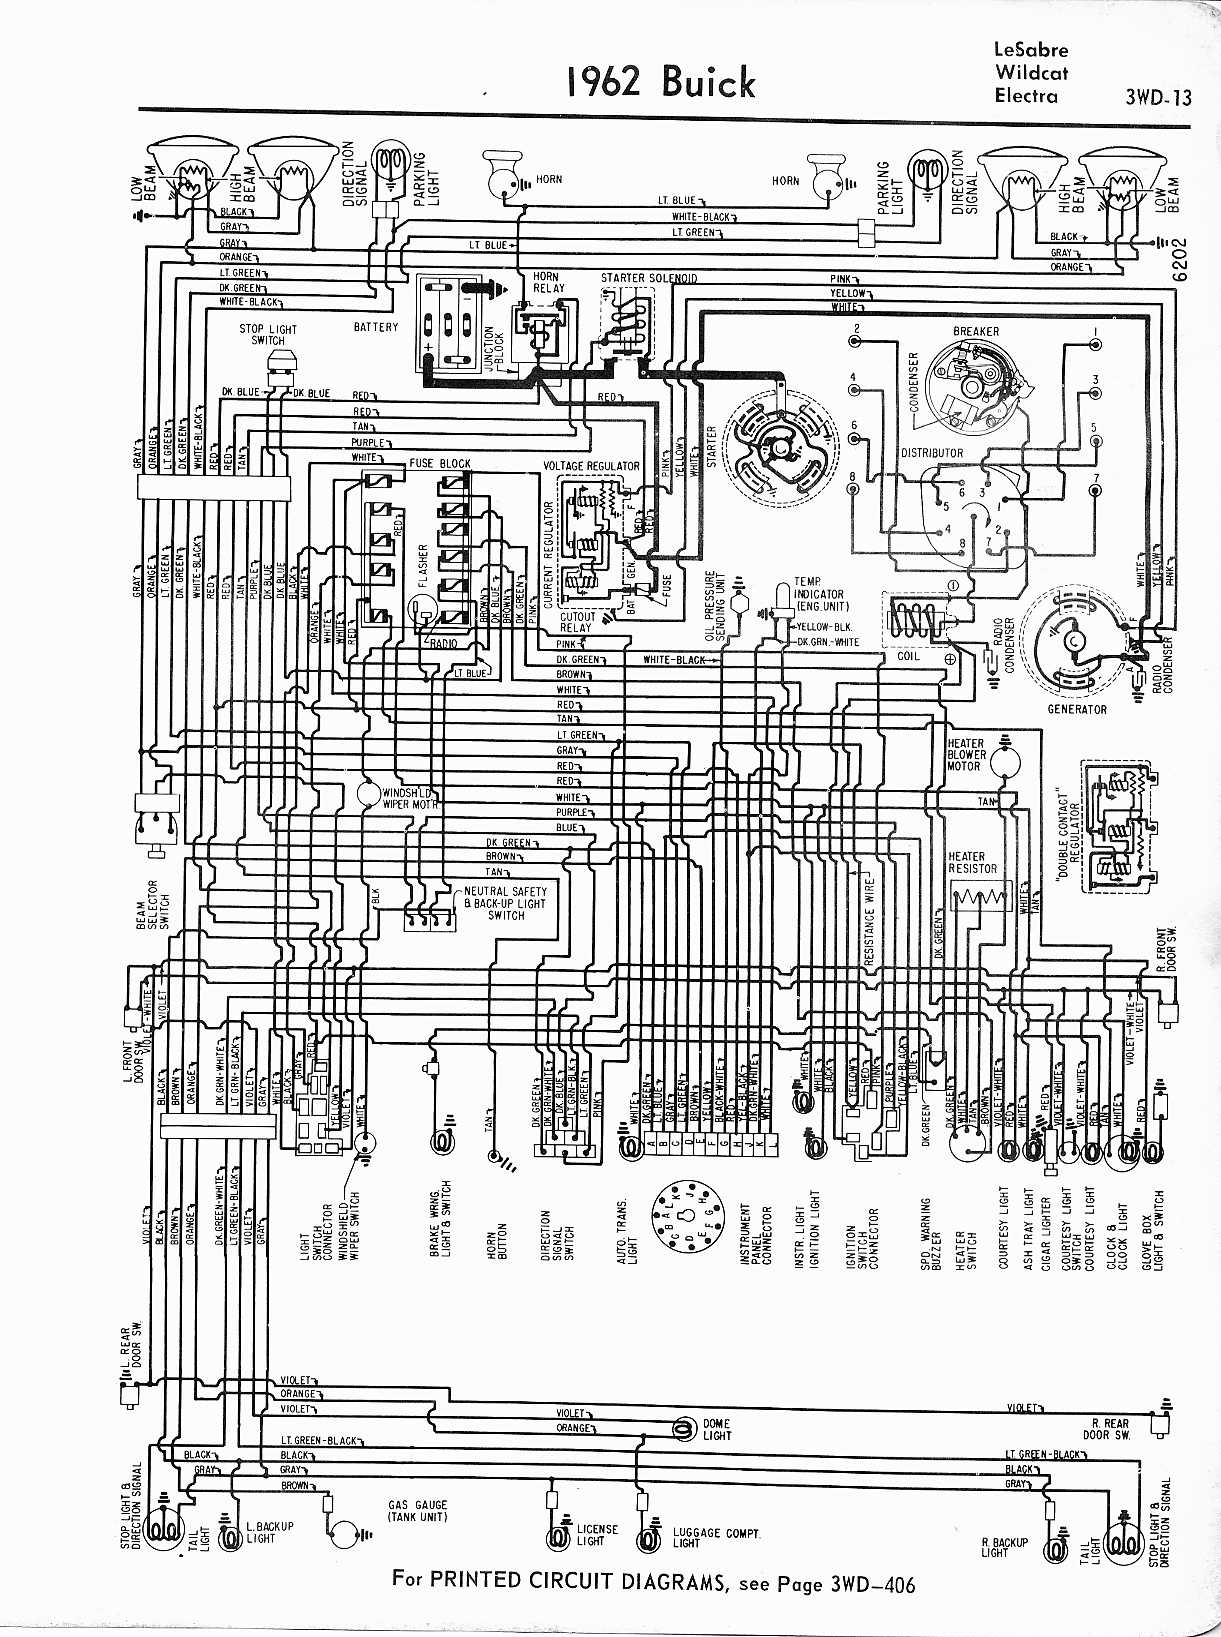 Diagram In Pictures Database 1970 Buick 455 Wiring Diagram Just Download Or Read Wiring Diagram Online Casalamm Edu Mx